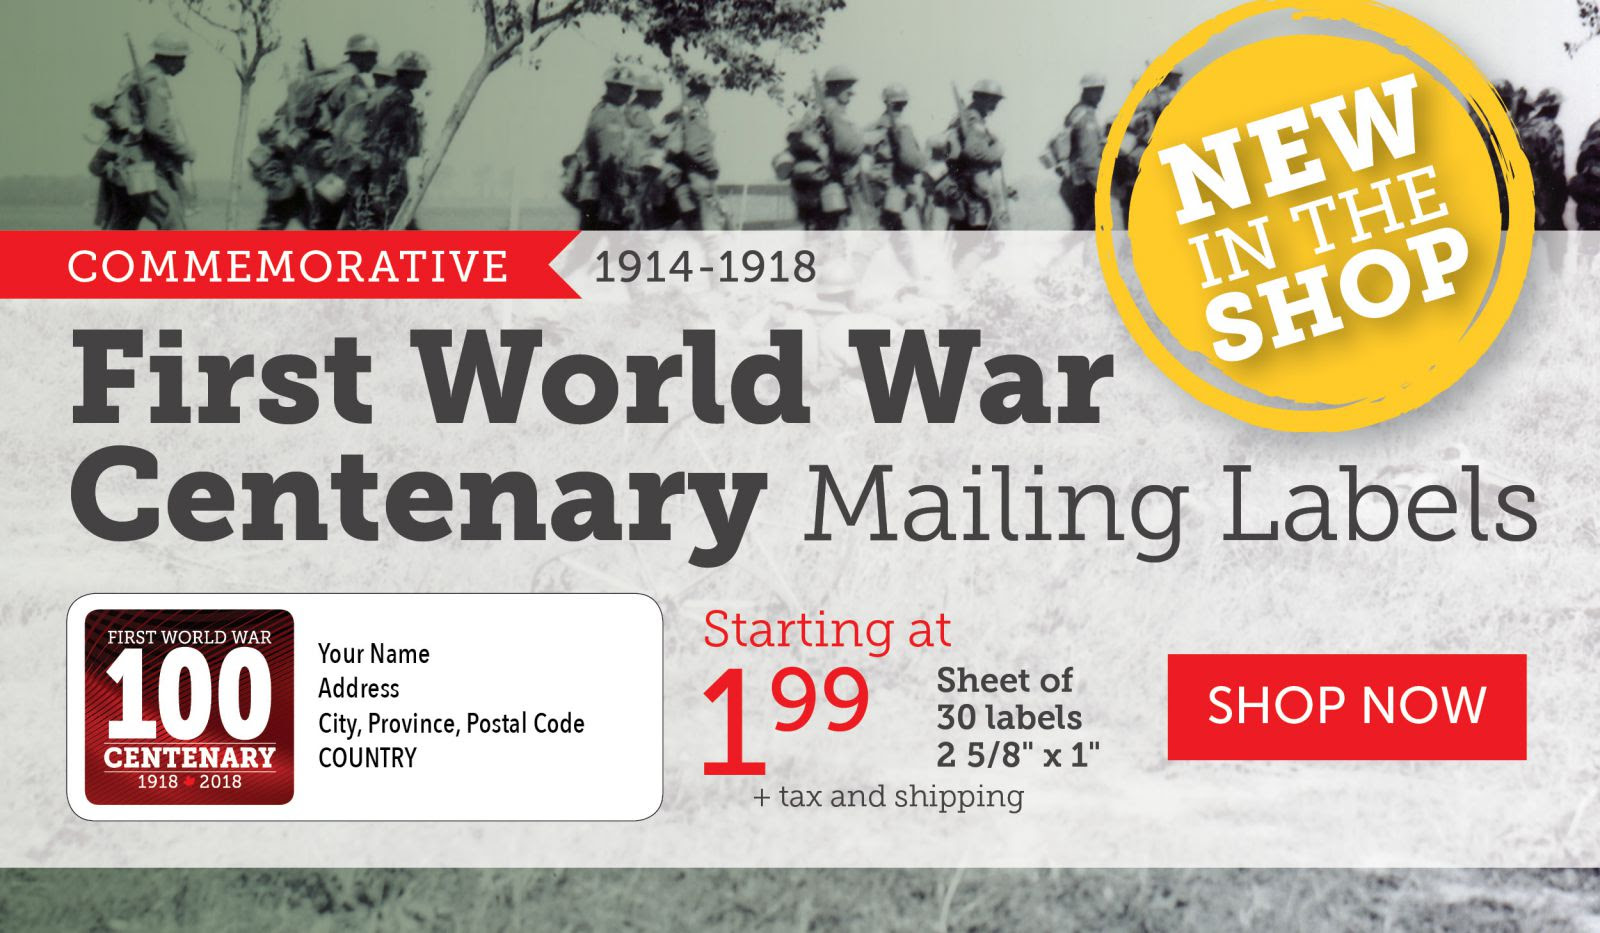 New First World War Centenary Mailing Labels!